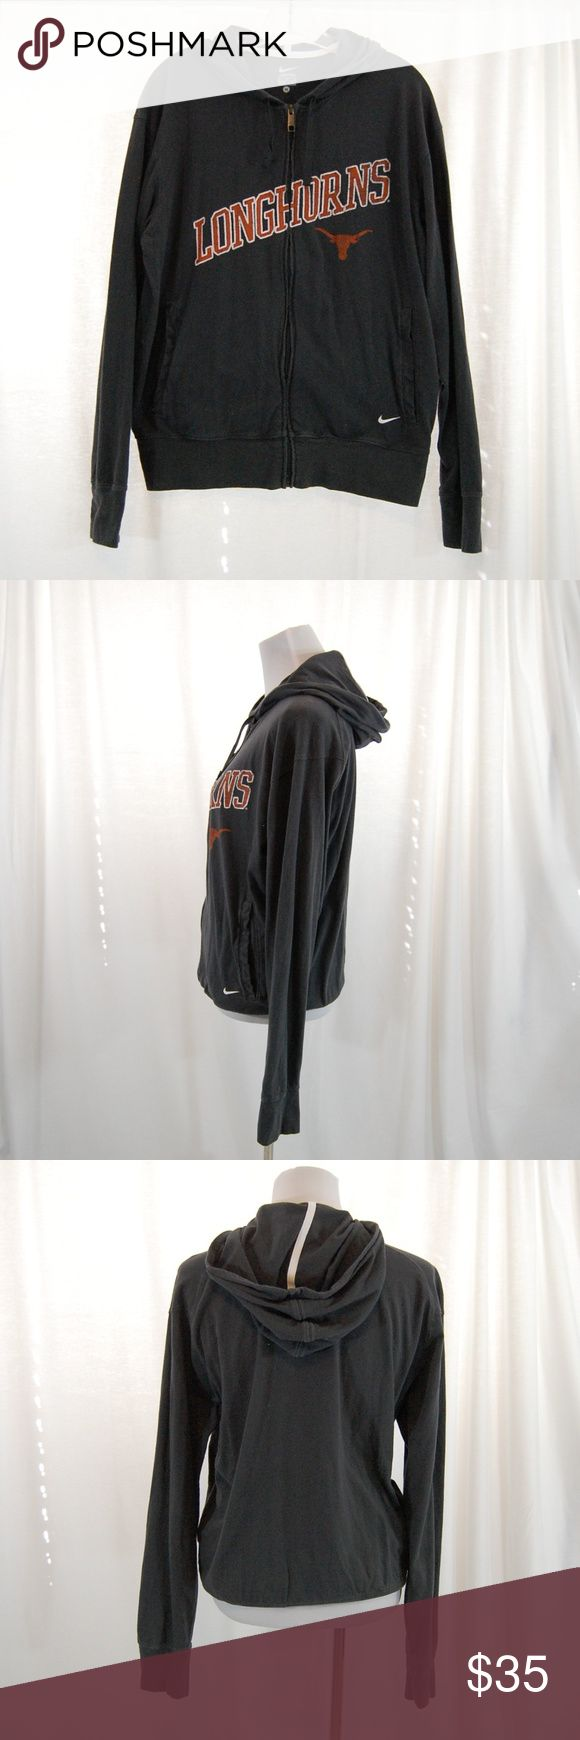 """🆕 (UNISEX) Nike UT (Texas) Longhorns Zip Hoodie Nike. Dark gray with """"longhorns"""" and logo on front only.  Lightweight / 100% cotton. Great year round. Full zip. Pockets at front. Full hood to pull up if needed.  Great condition - worn and washed once. However, there is a small little hole (got snagged on something) near the zipper - see picture for size comparison to fingernail. Super hard to see.  Men's Medium, but great on both men & women!  Approximate measurements (taken flat & zipped)…"""